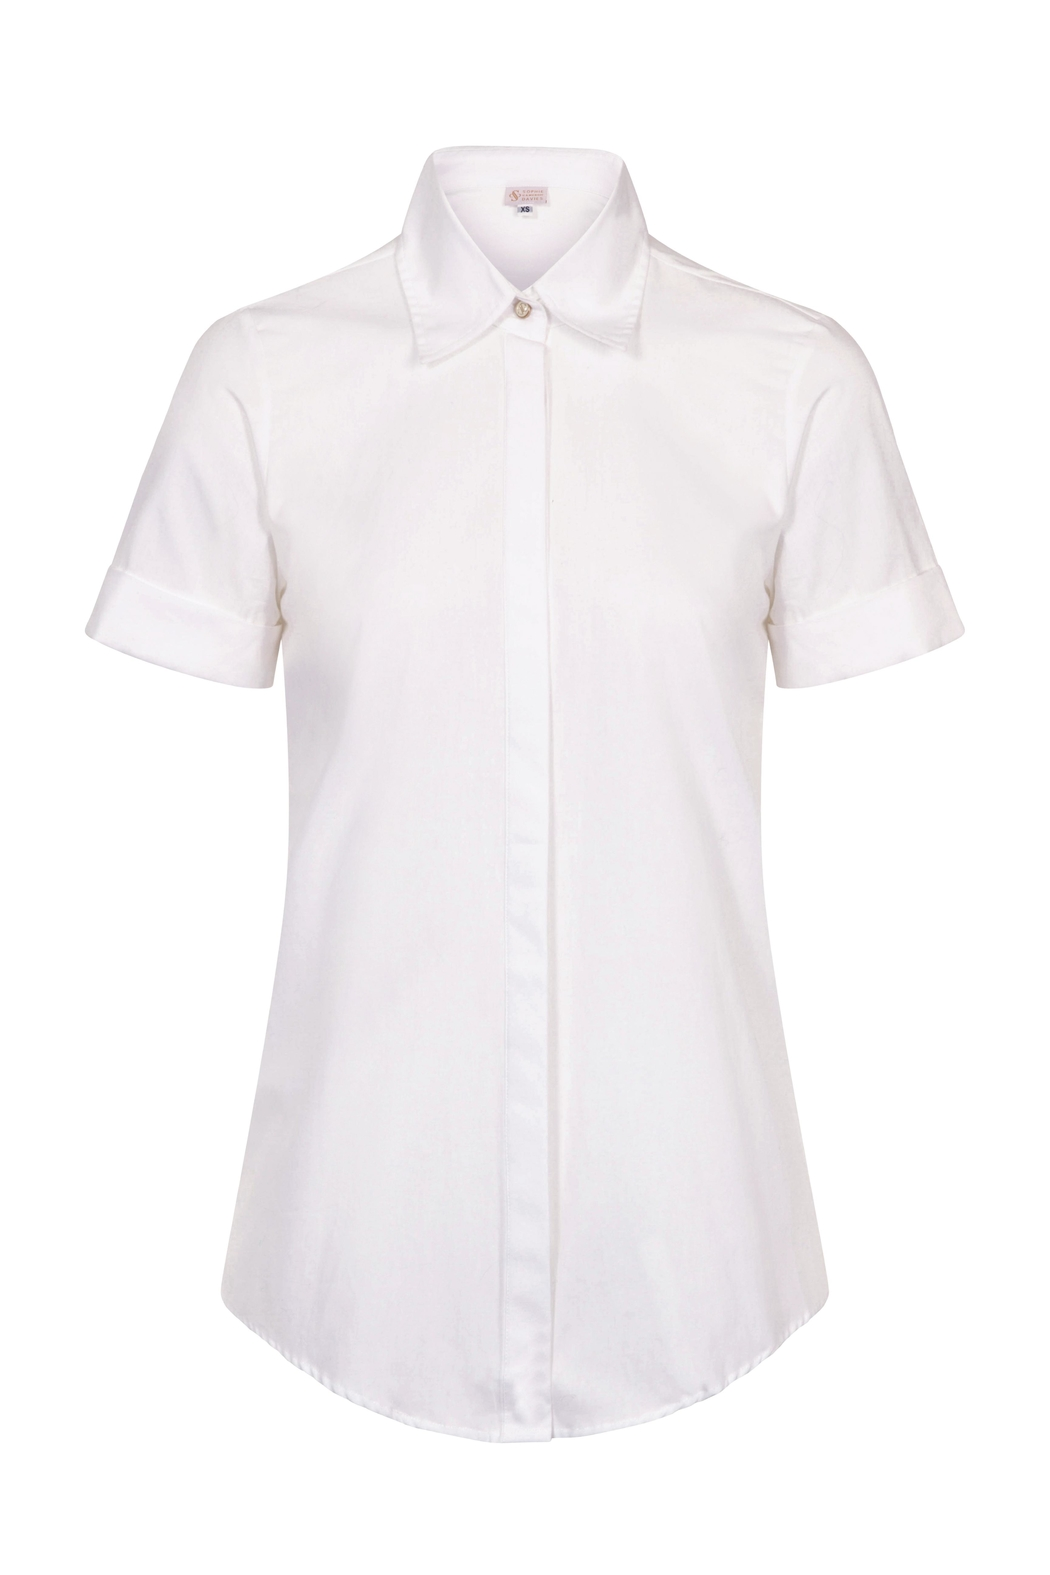 Sophie Cameron Davies Cotton Classic Shirt - Front Full Image